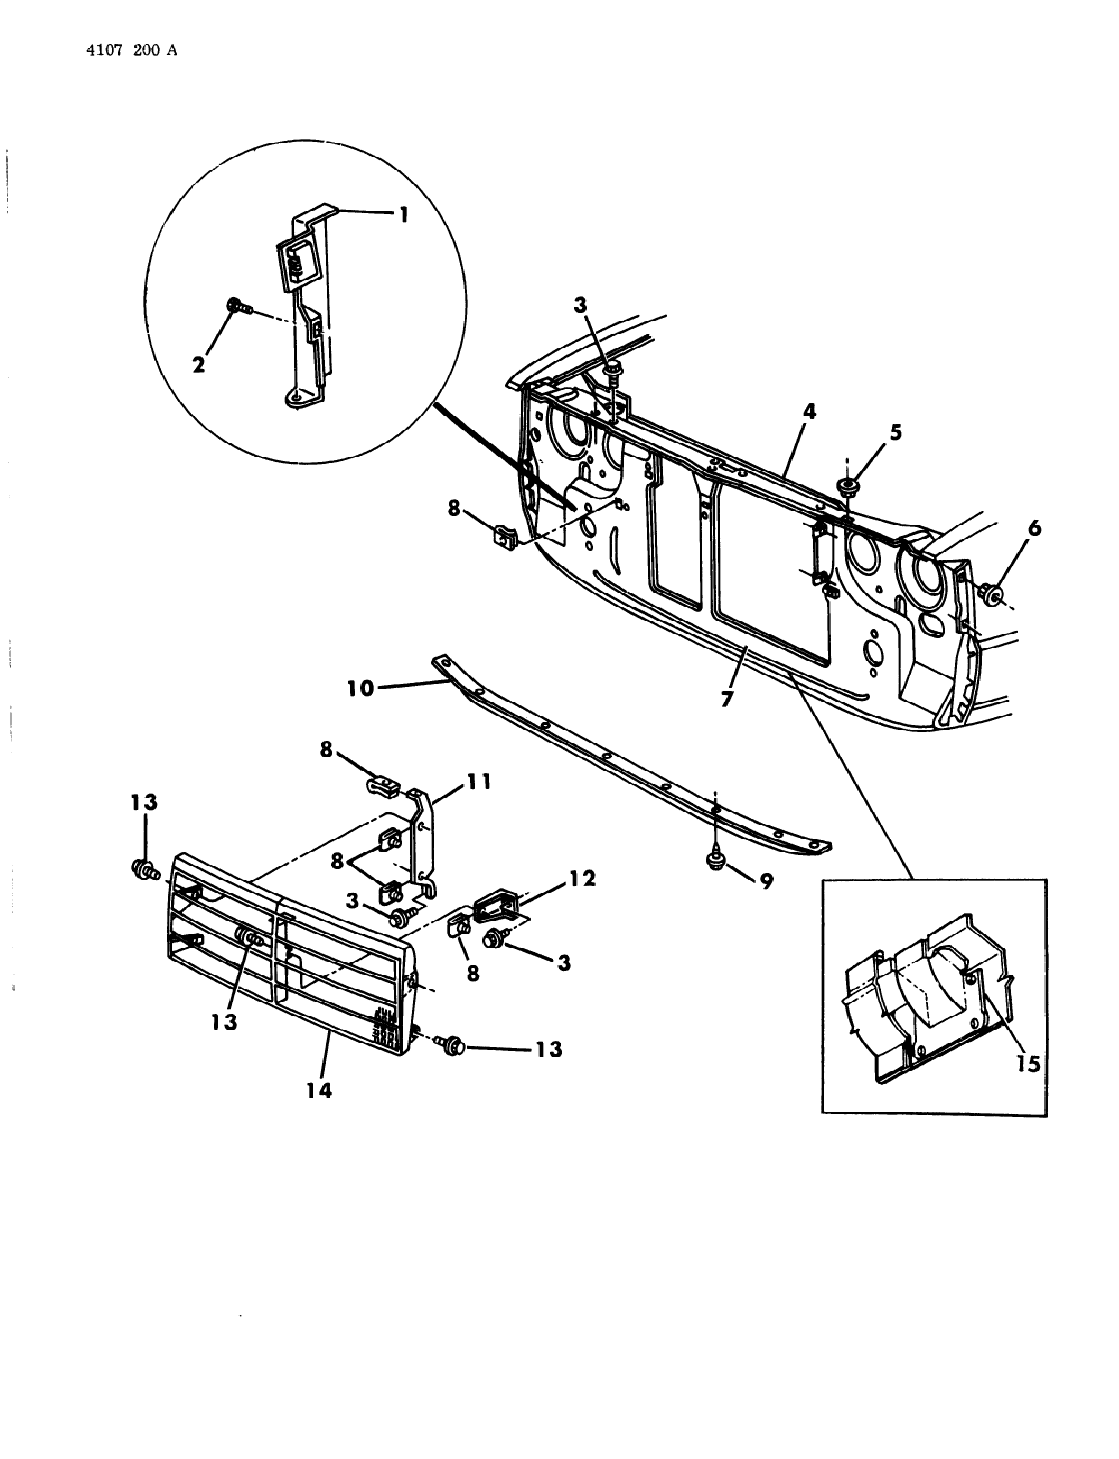 1984 Dodge 600 Convertible & Coupe Grille & Related Parts